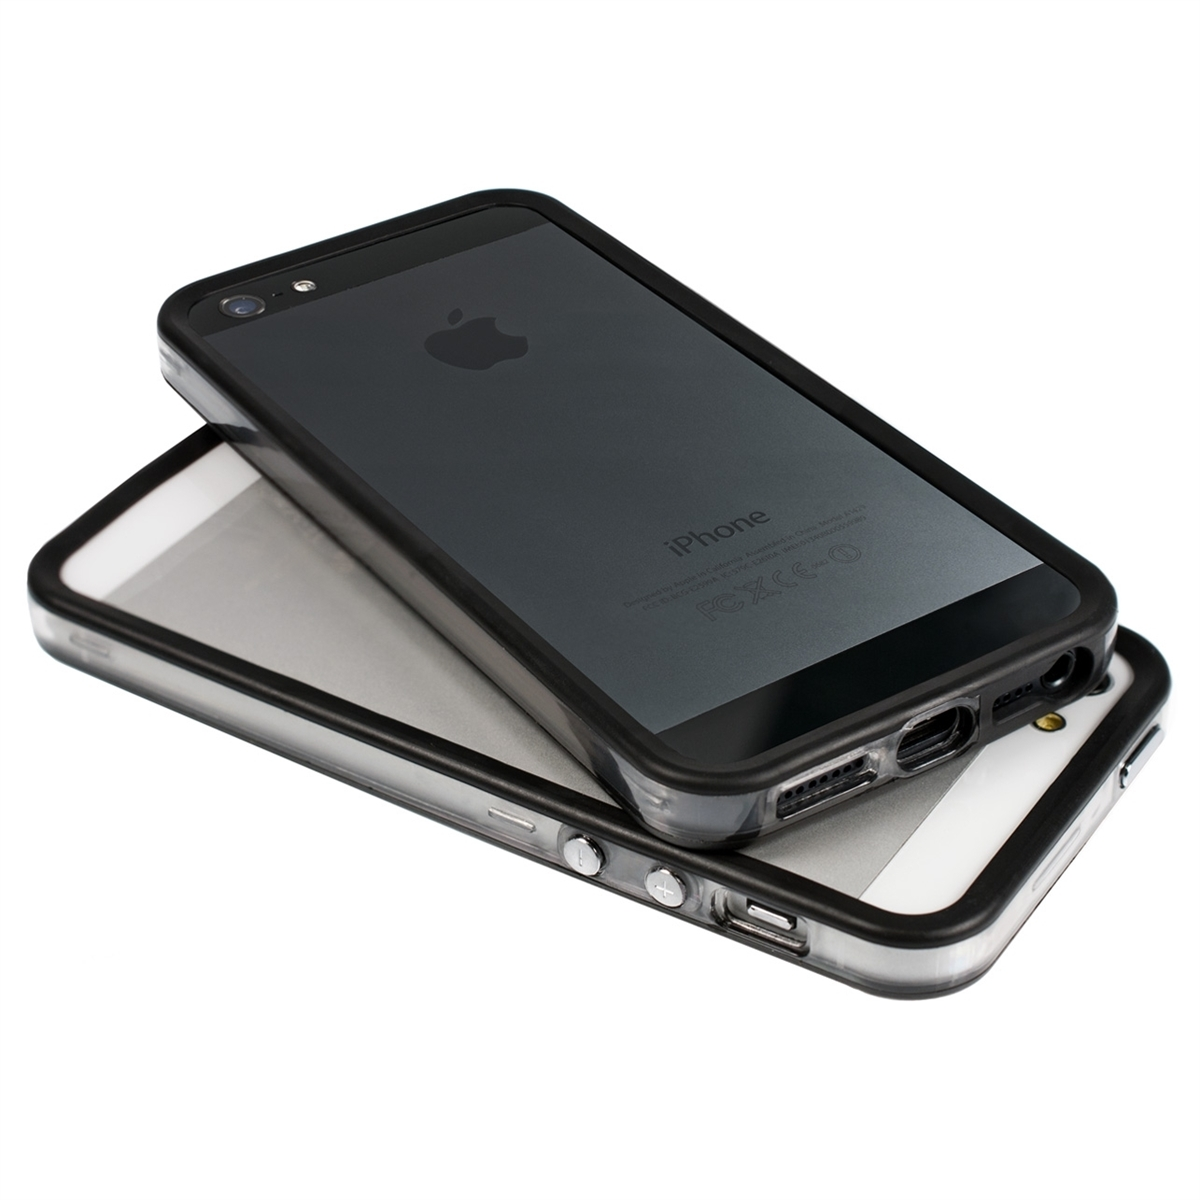 Iphone 5s from Cellphones & Telecommunications, Phone Bumper, Fitted Cases, Half-wrapped Case and more related Bumper. Iphone 5s like iphone 5s wholed, adsorptive iphone 5s, feihoo iphone 5s, iphone 5s toughe. Discover over of the best Selection Bumper. Iphone 5s on jwl-network.ga Besides, various selected Bumper.